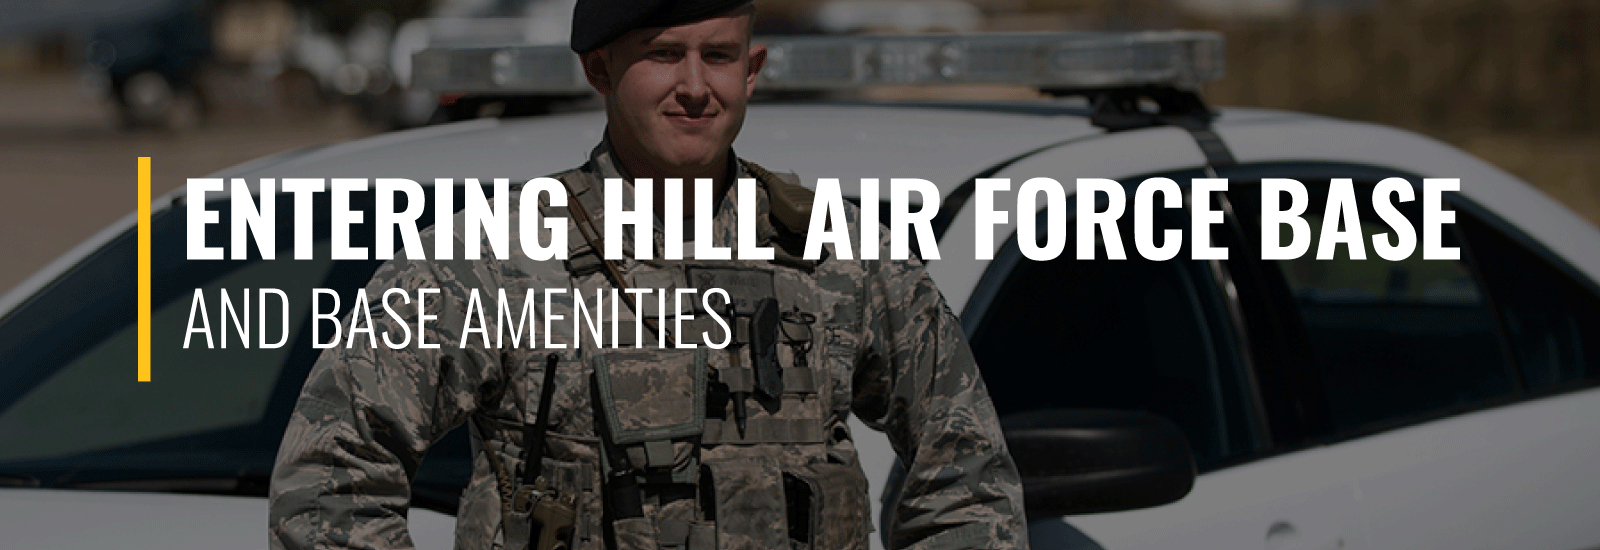 Entering Hill Air Force Base and Amenities